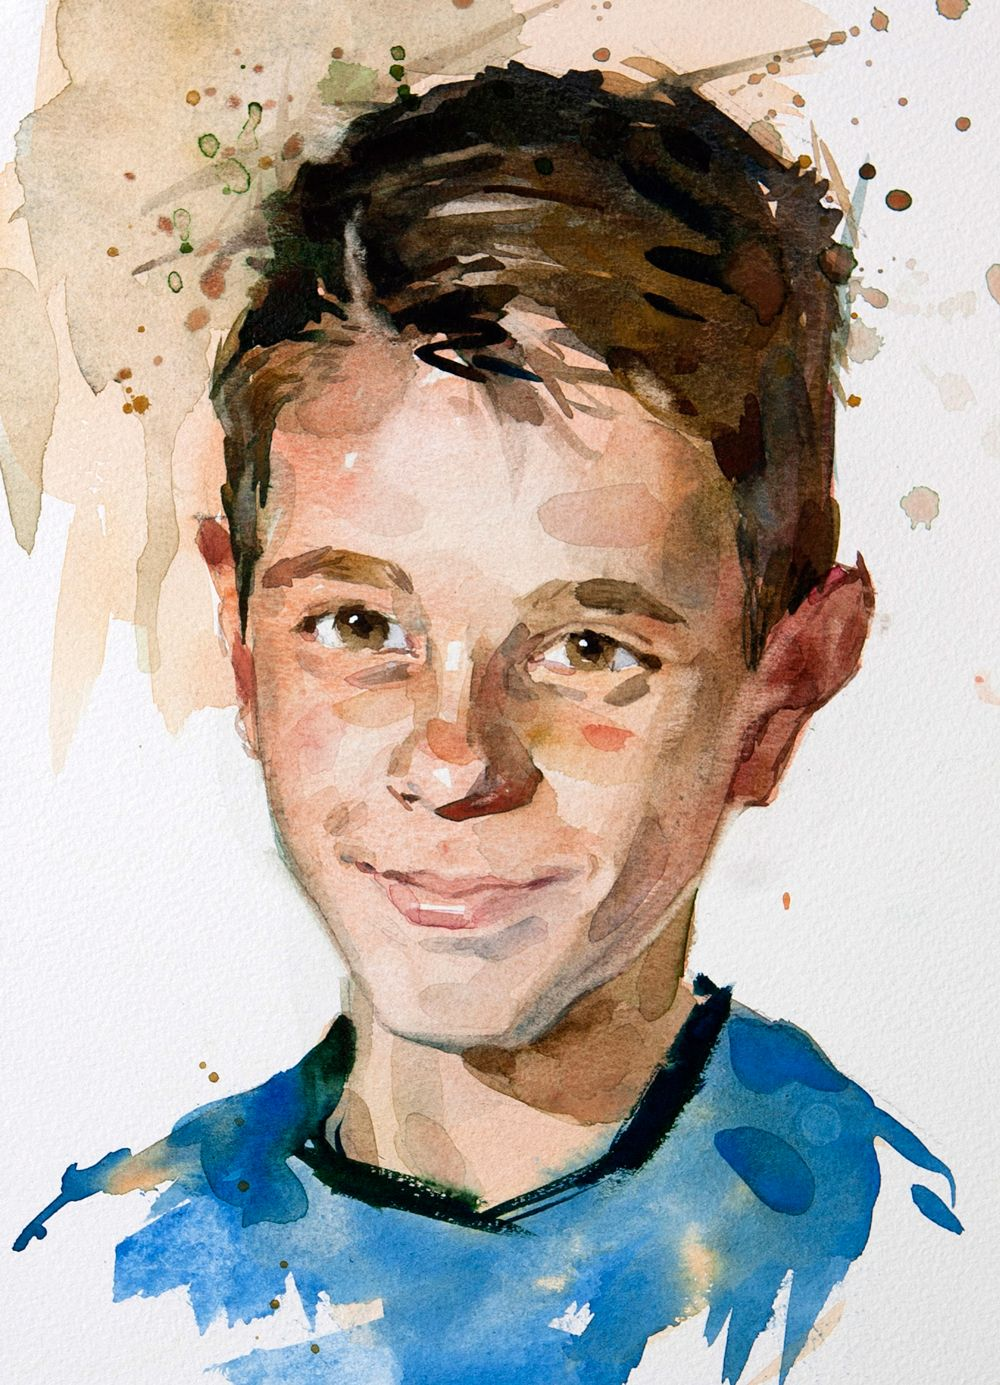 Painting A Portrait In Watercolour S Izobrazheniyami Akvarelnye